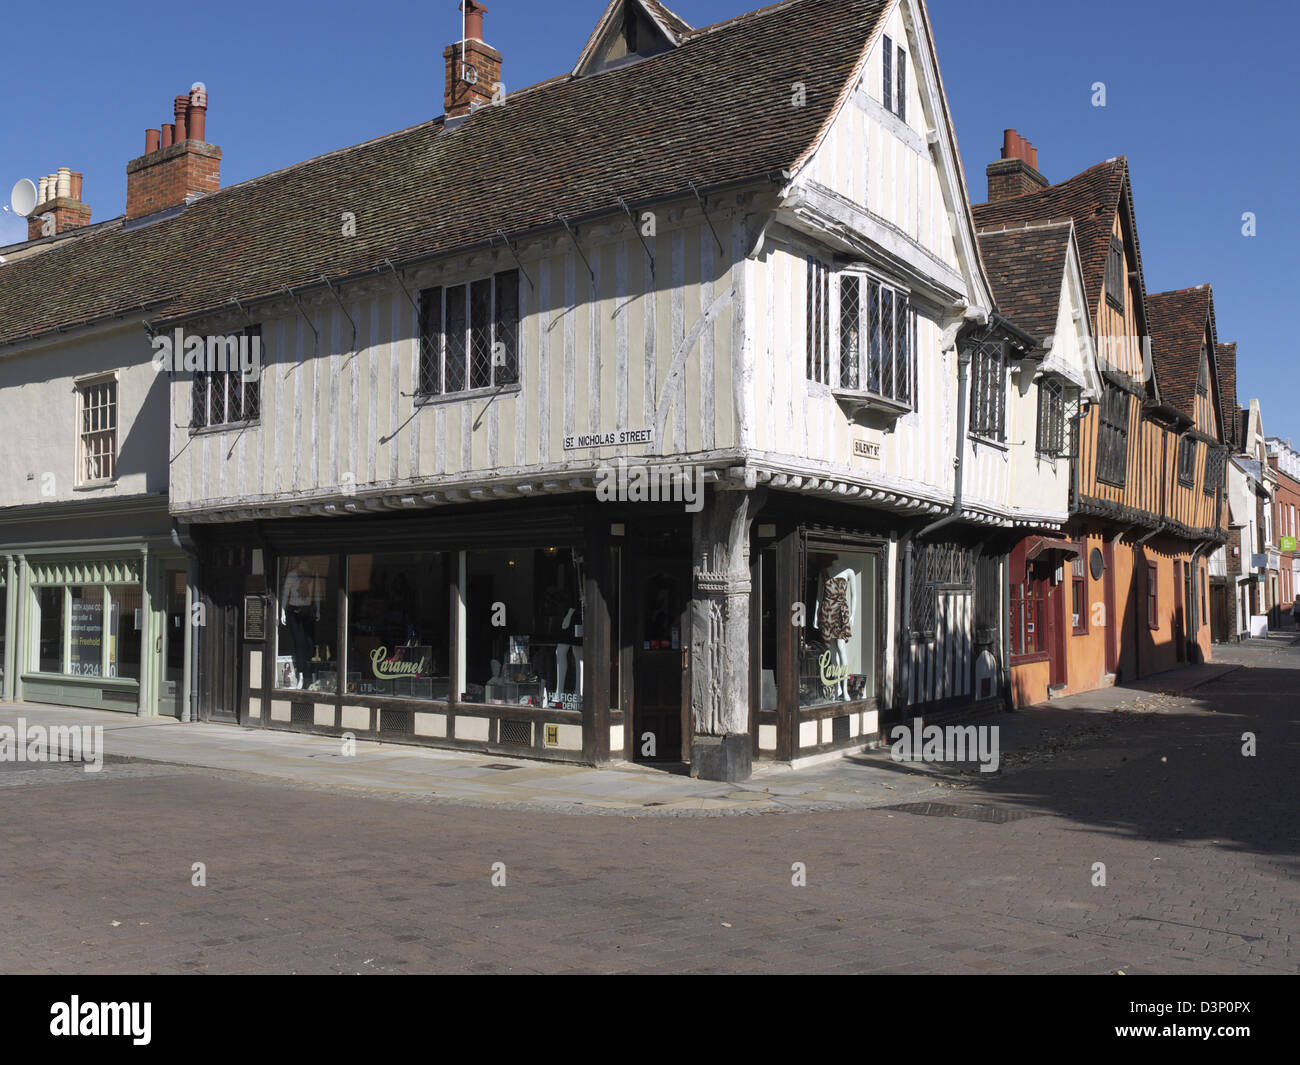 Old Tudor buildings in the town of Ipswich, Suffolk - Stock Image